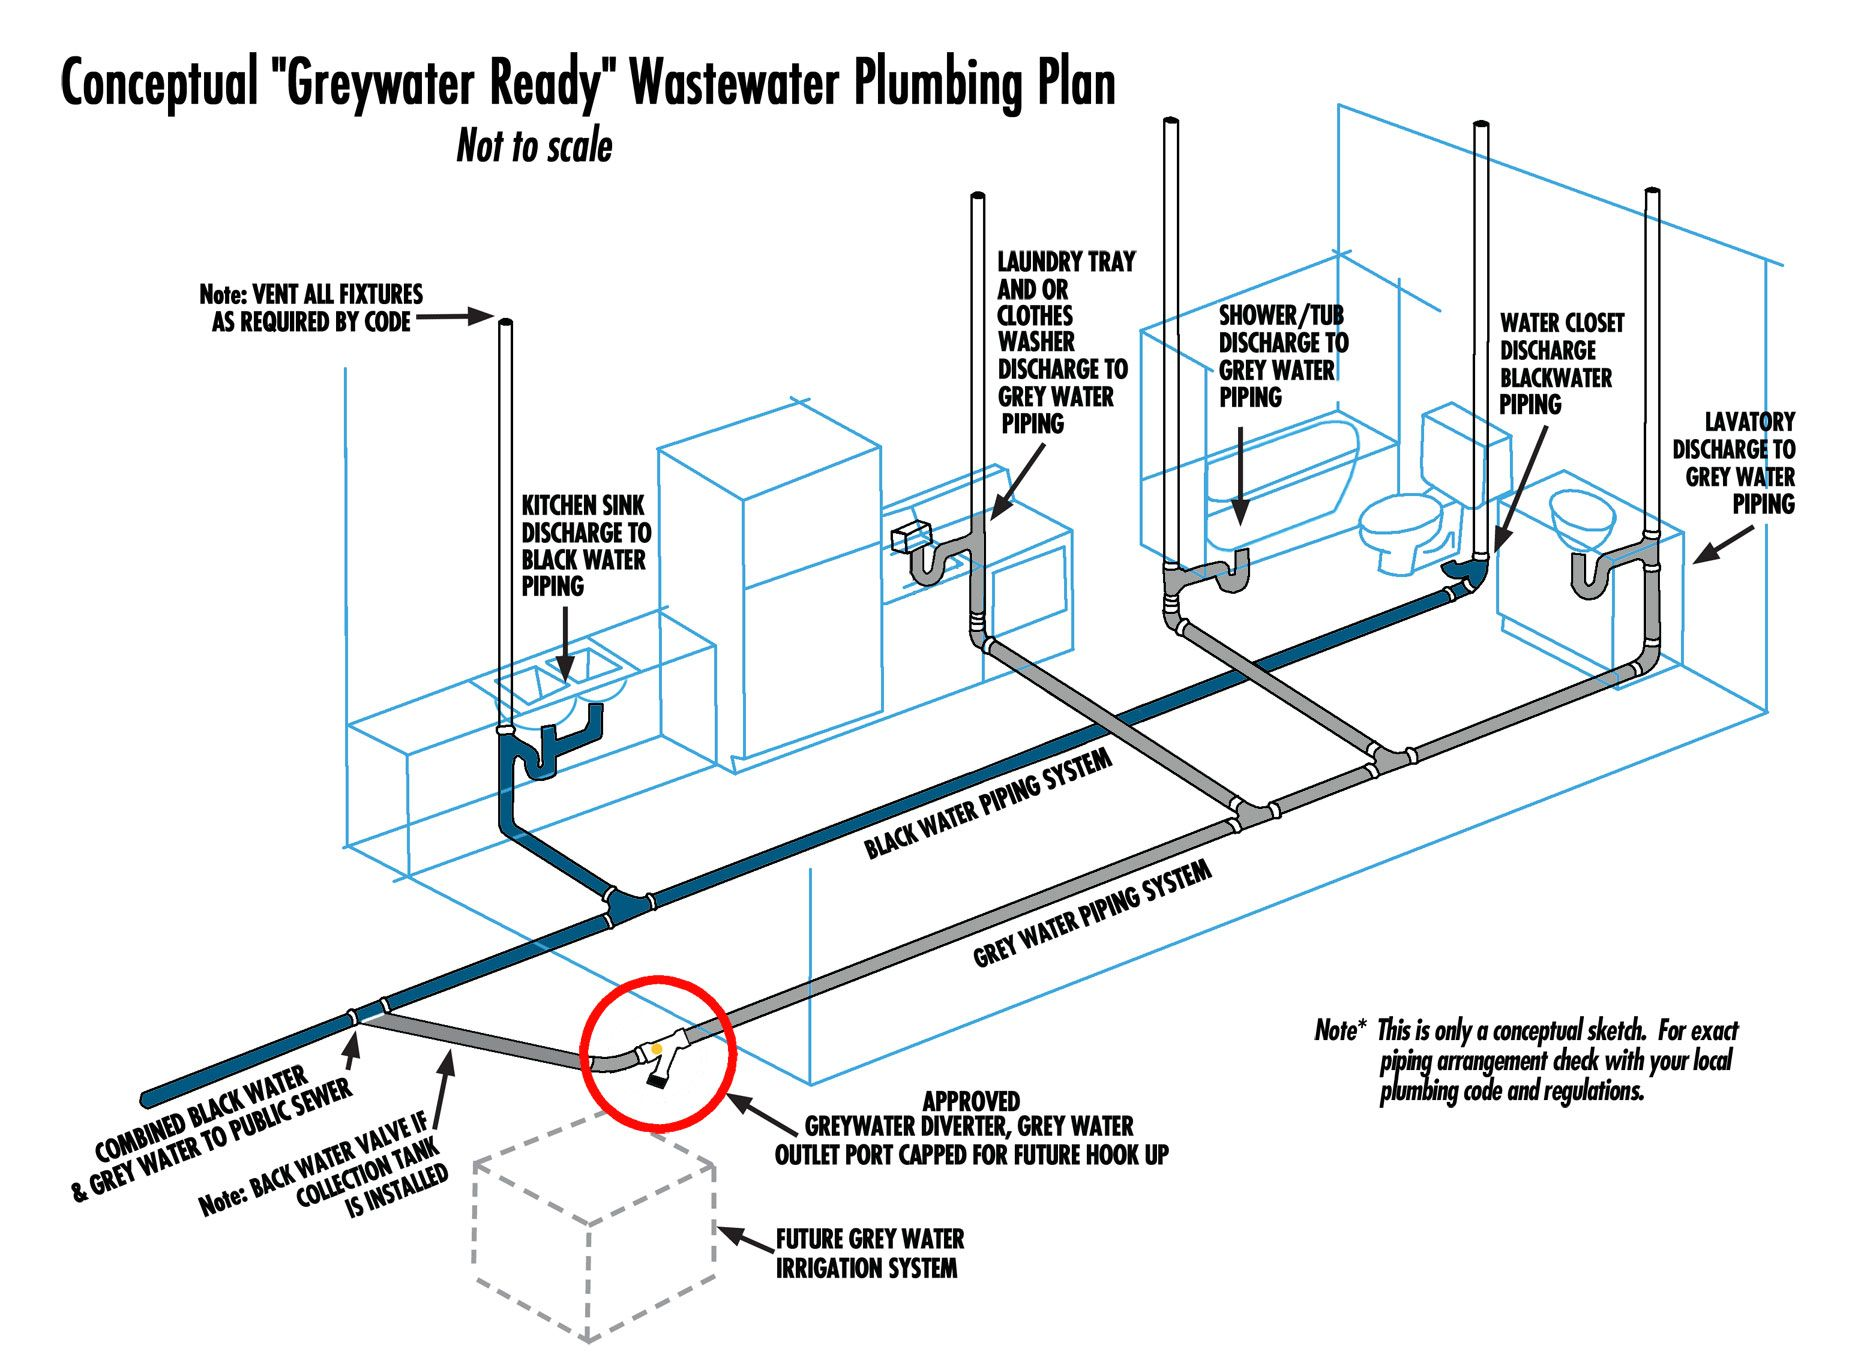 Graywater Plumbing Plans Bathroom Sink Plumbing Water Pipes